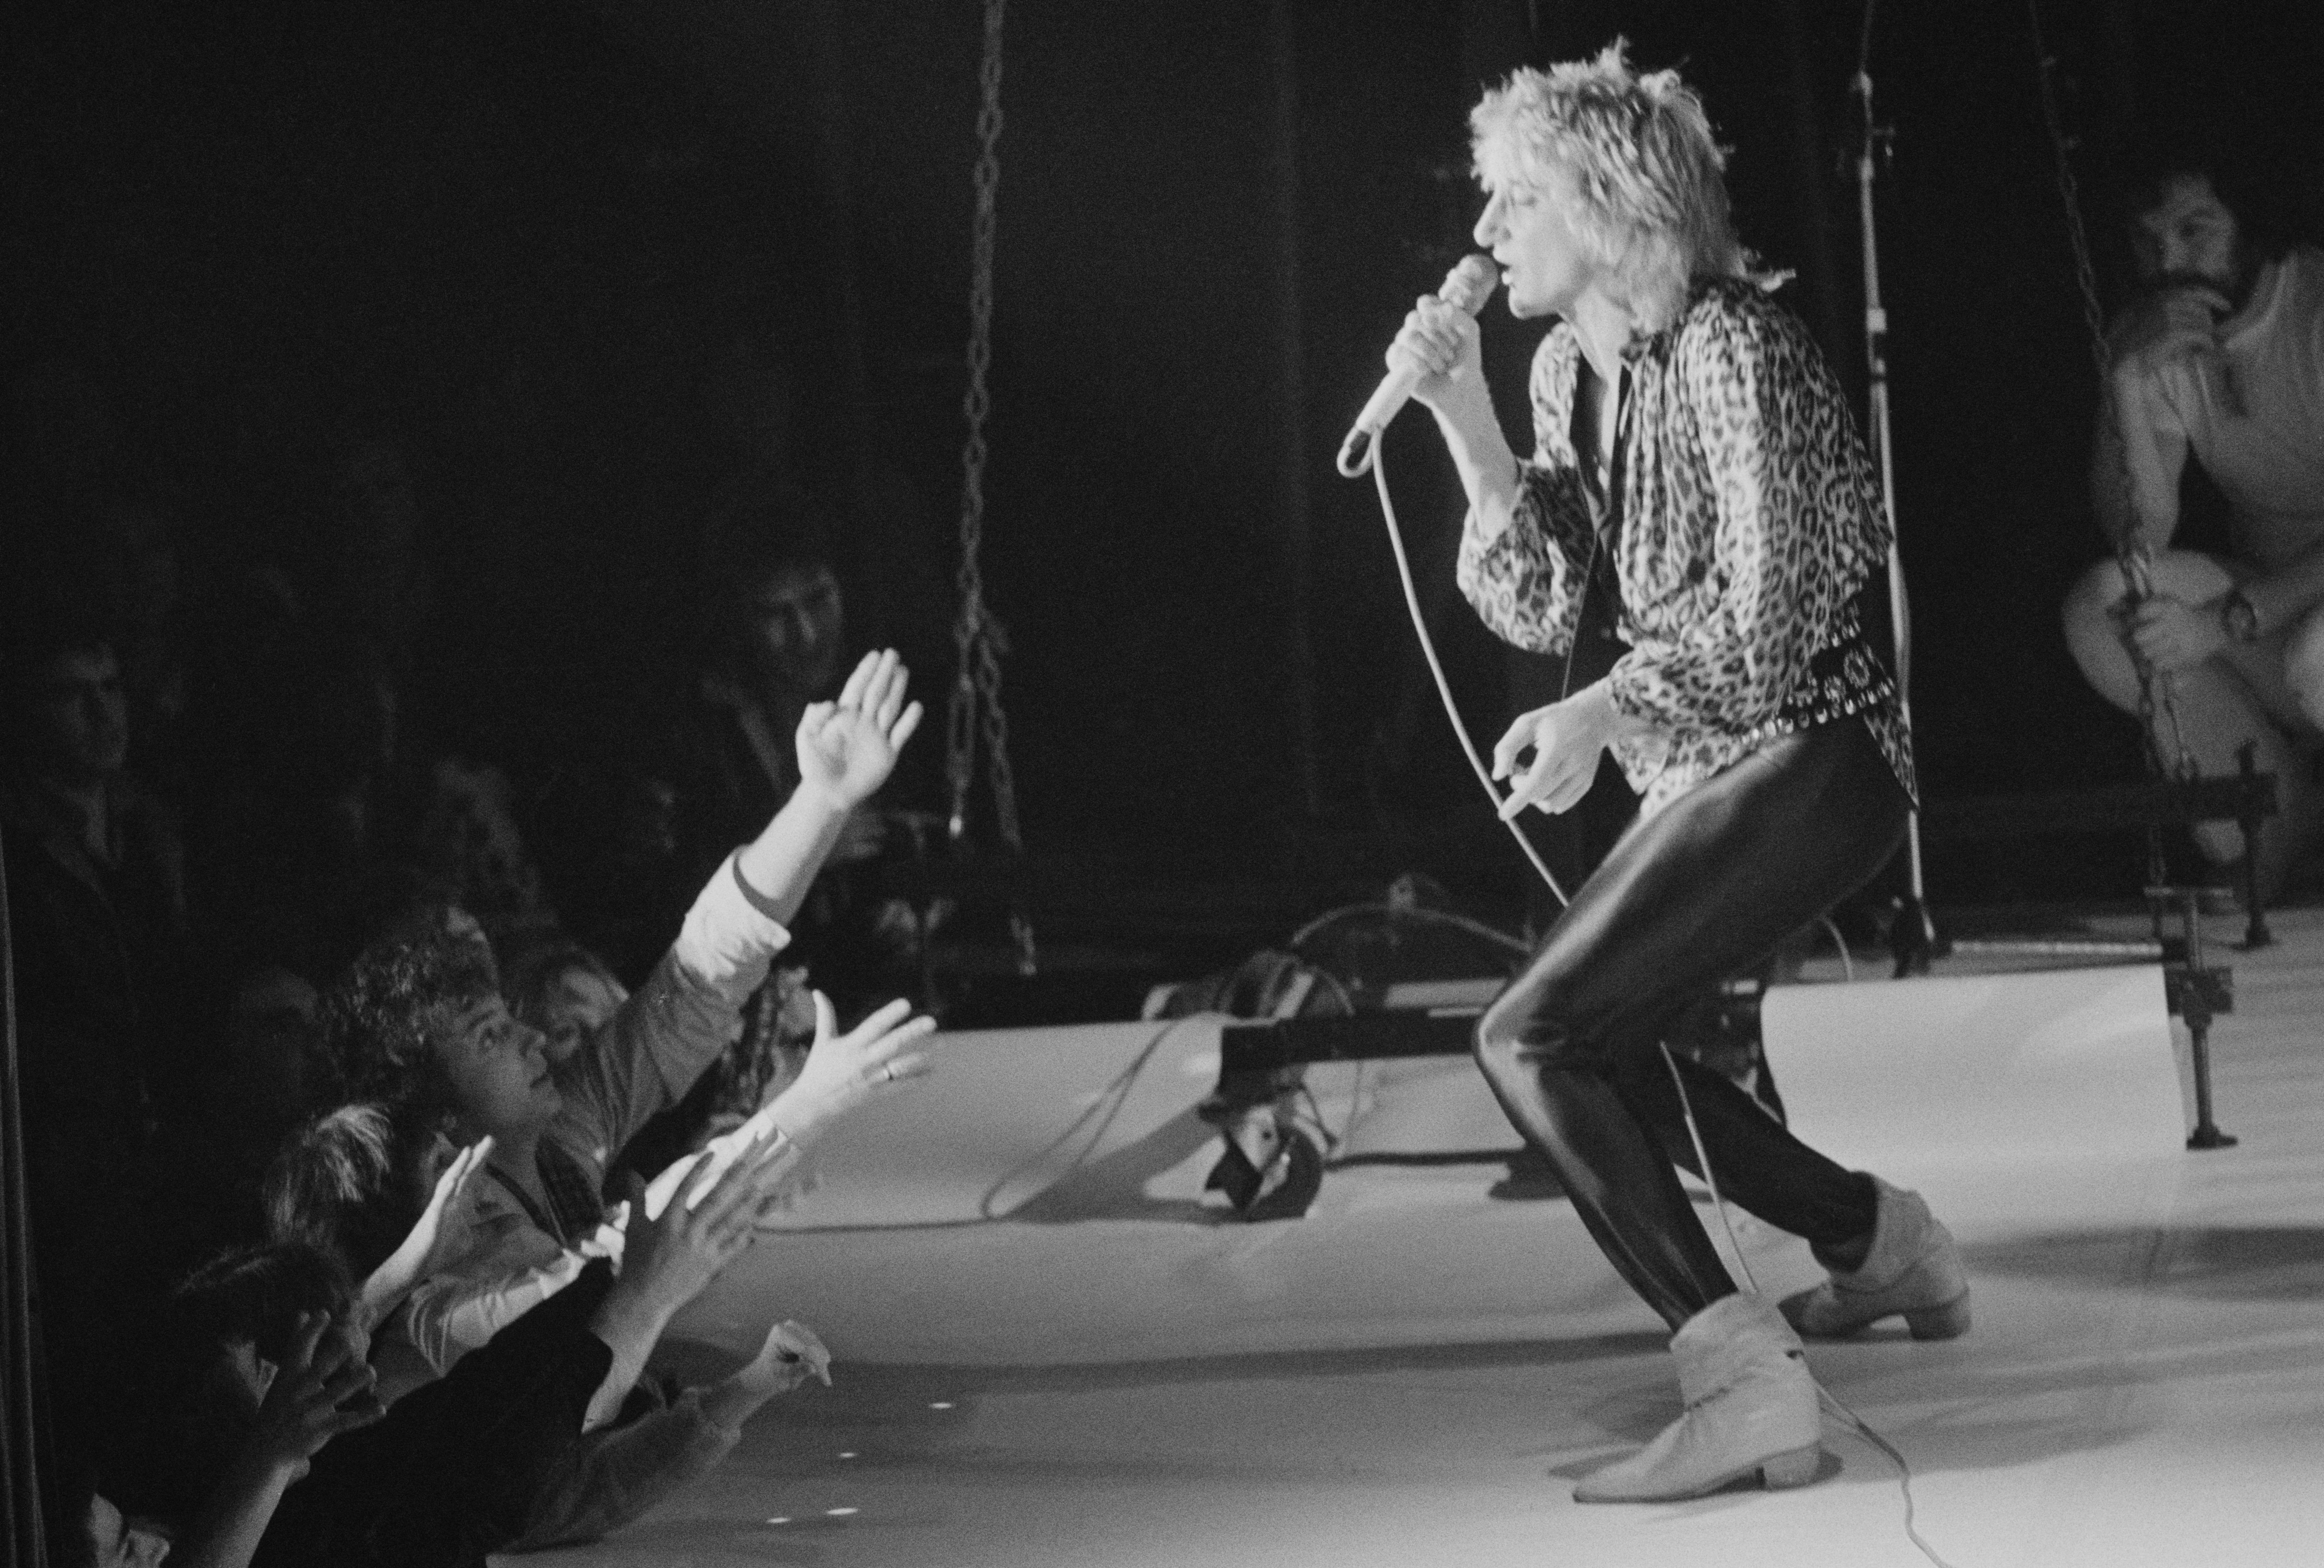 British rock singer and songwriter Rod Stewart performing at the Olympia, London, UK, December 1978. (Photo by Colin Davey/Evening Standard/Hulton Archive/Getty Images)